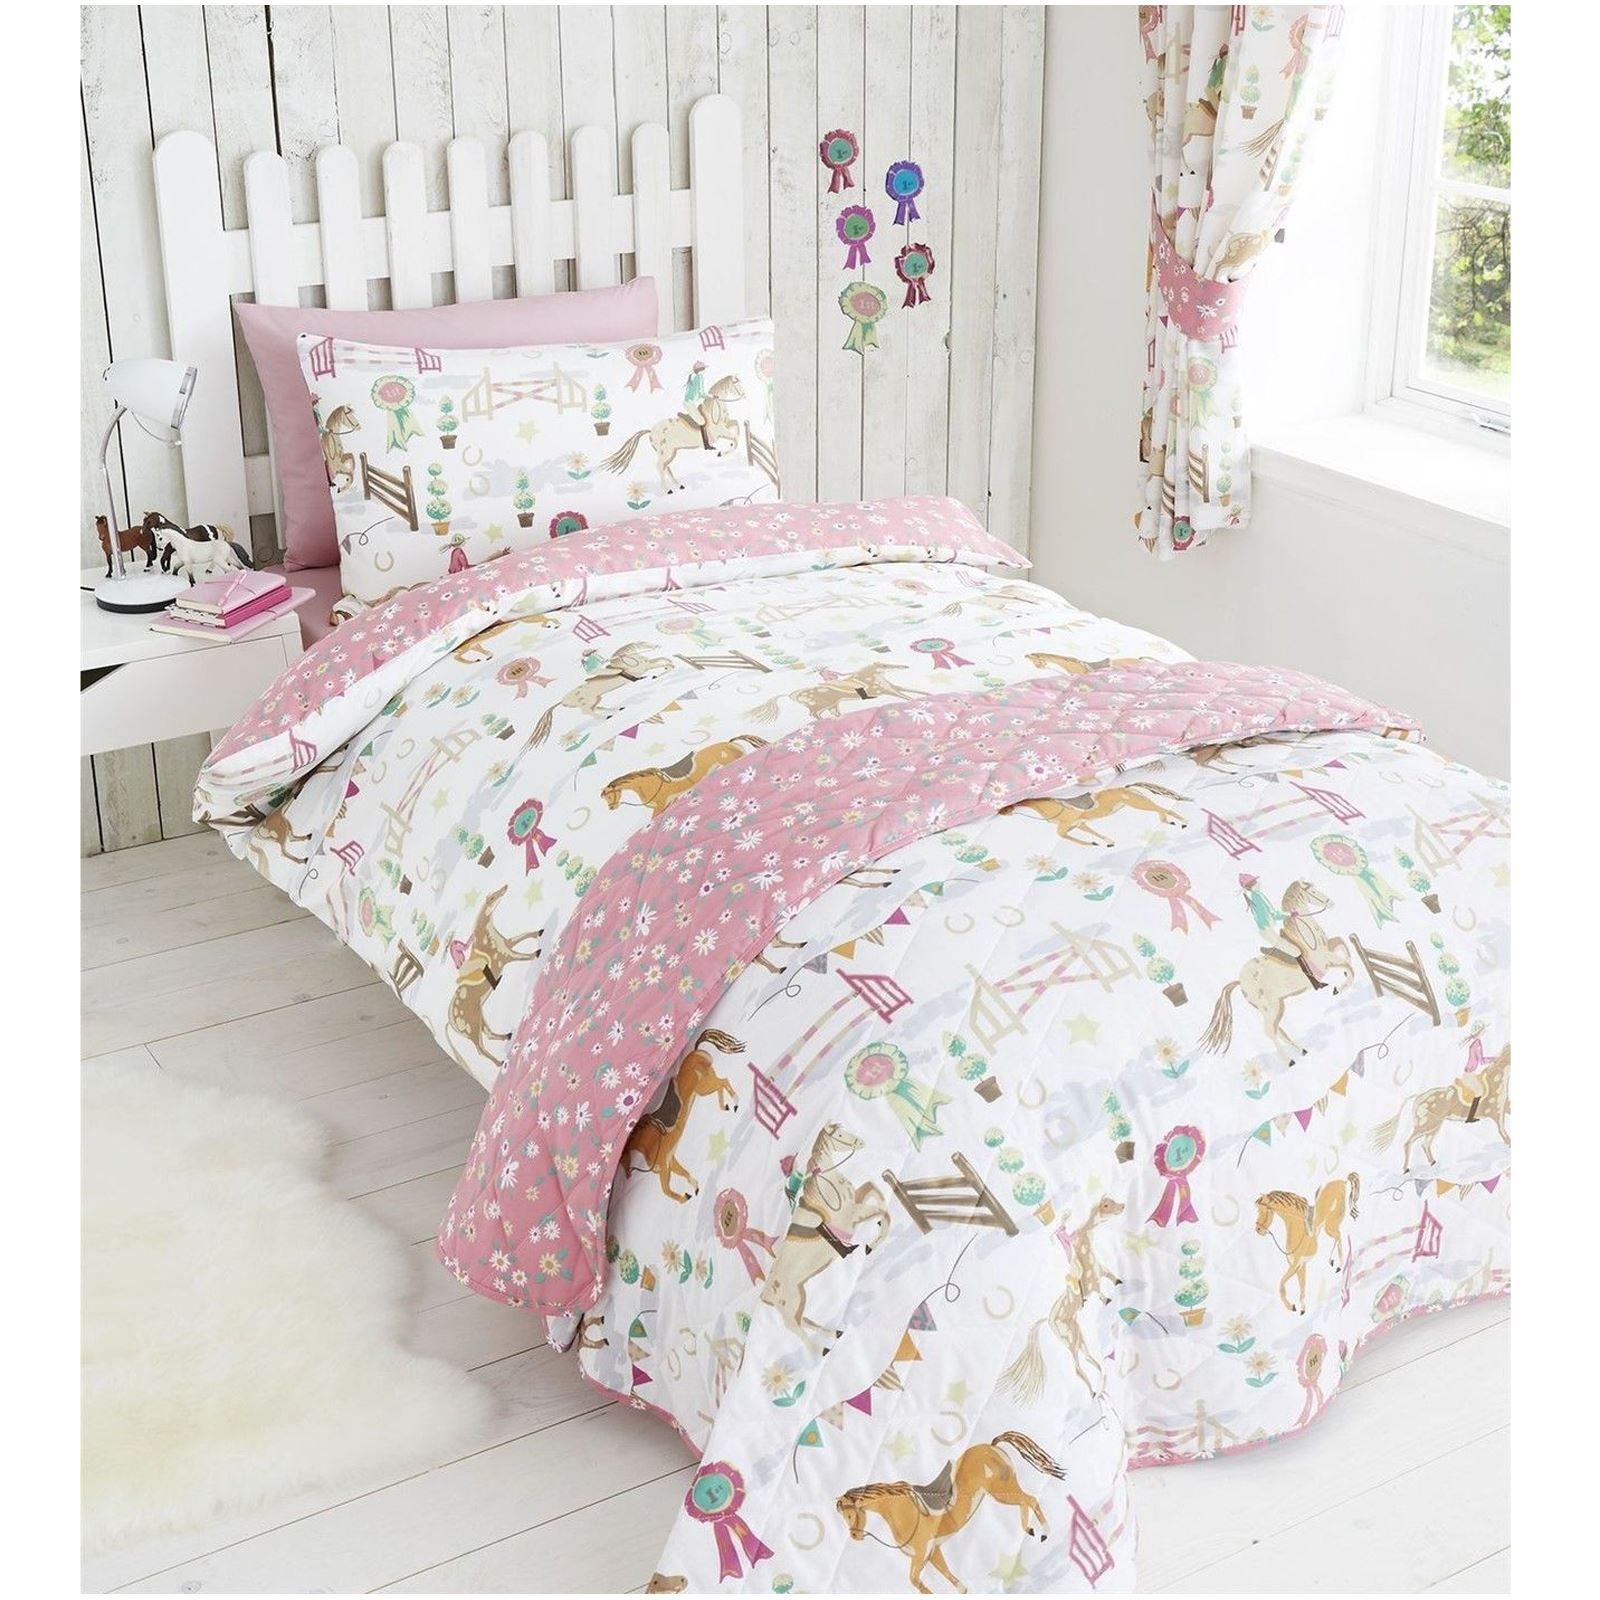 girls bedding HORSE SHOW DUVET COVER SETS IN VARIOUS SIZES GIRLS BEDDING BEDROOM NEW